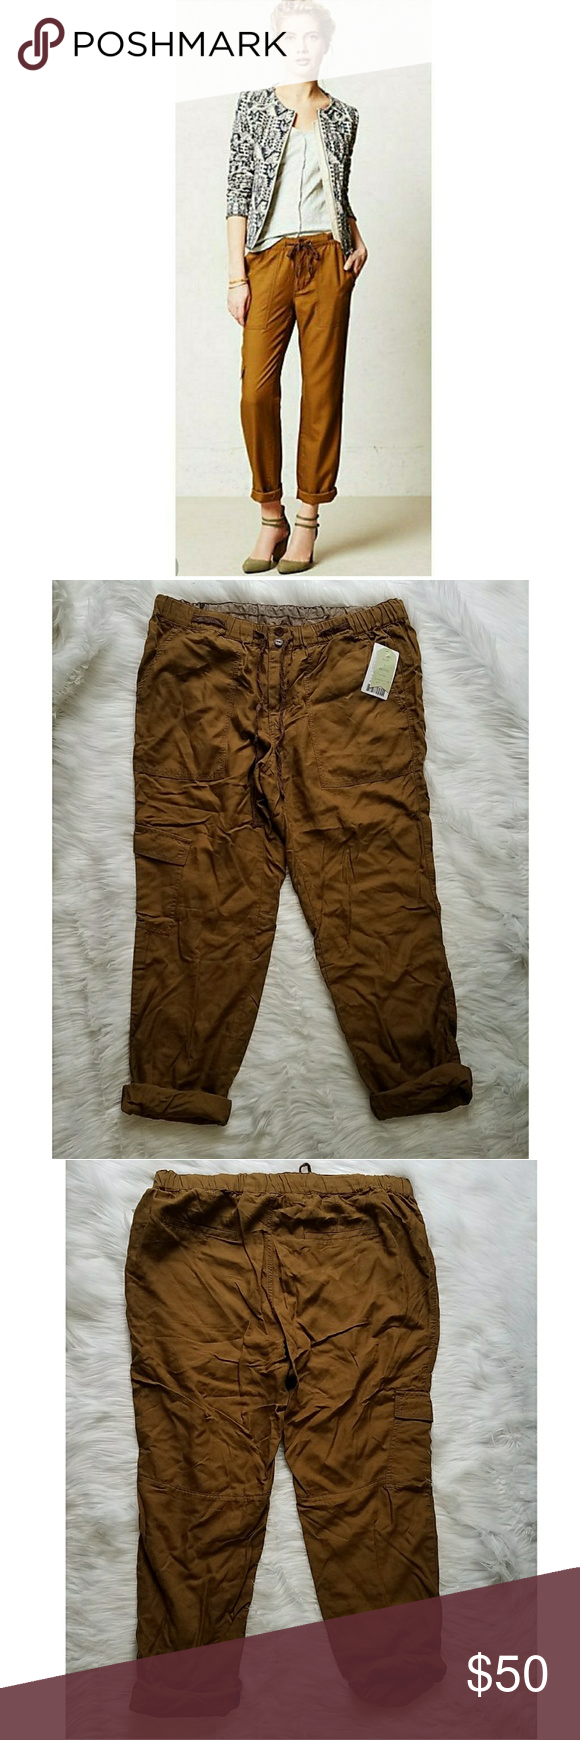 Hei Hei brown drawstring pants New with tags. Comfortable and cool. Length 39 inches uncuffed, inseam 28 inches, waist 16 inches C6 Anthropologie Pants Trousers